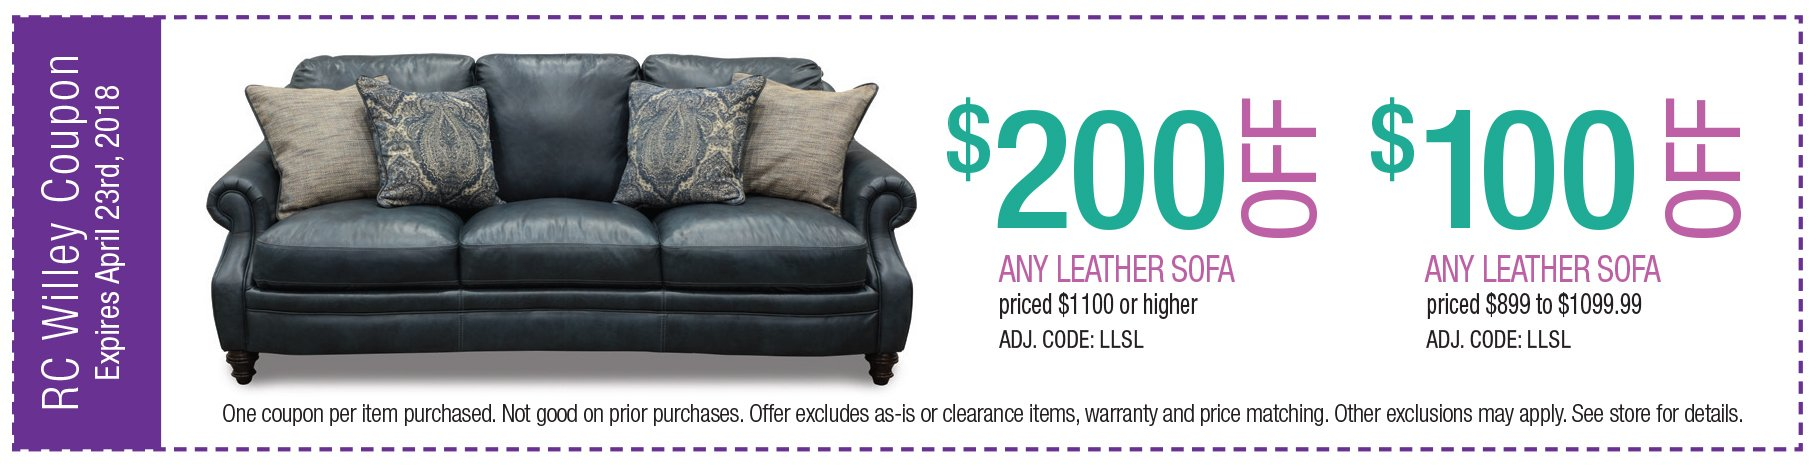 $200 off any leather sofa $1100 or higher or $100 off $999 - $1099.99